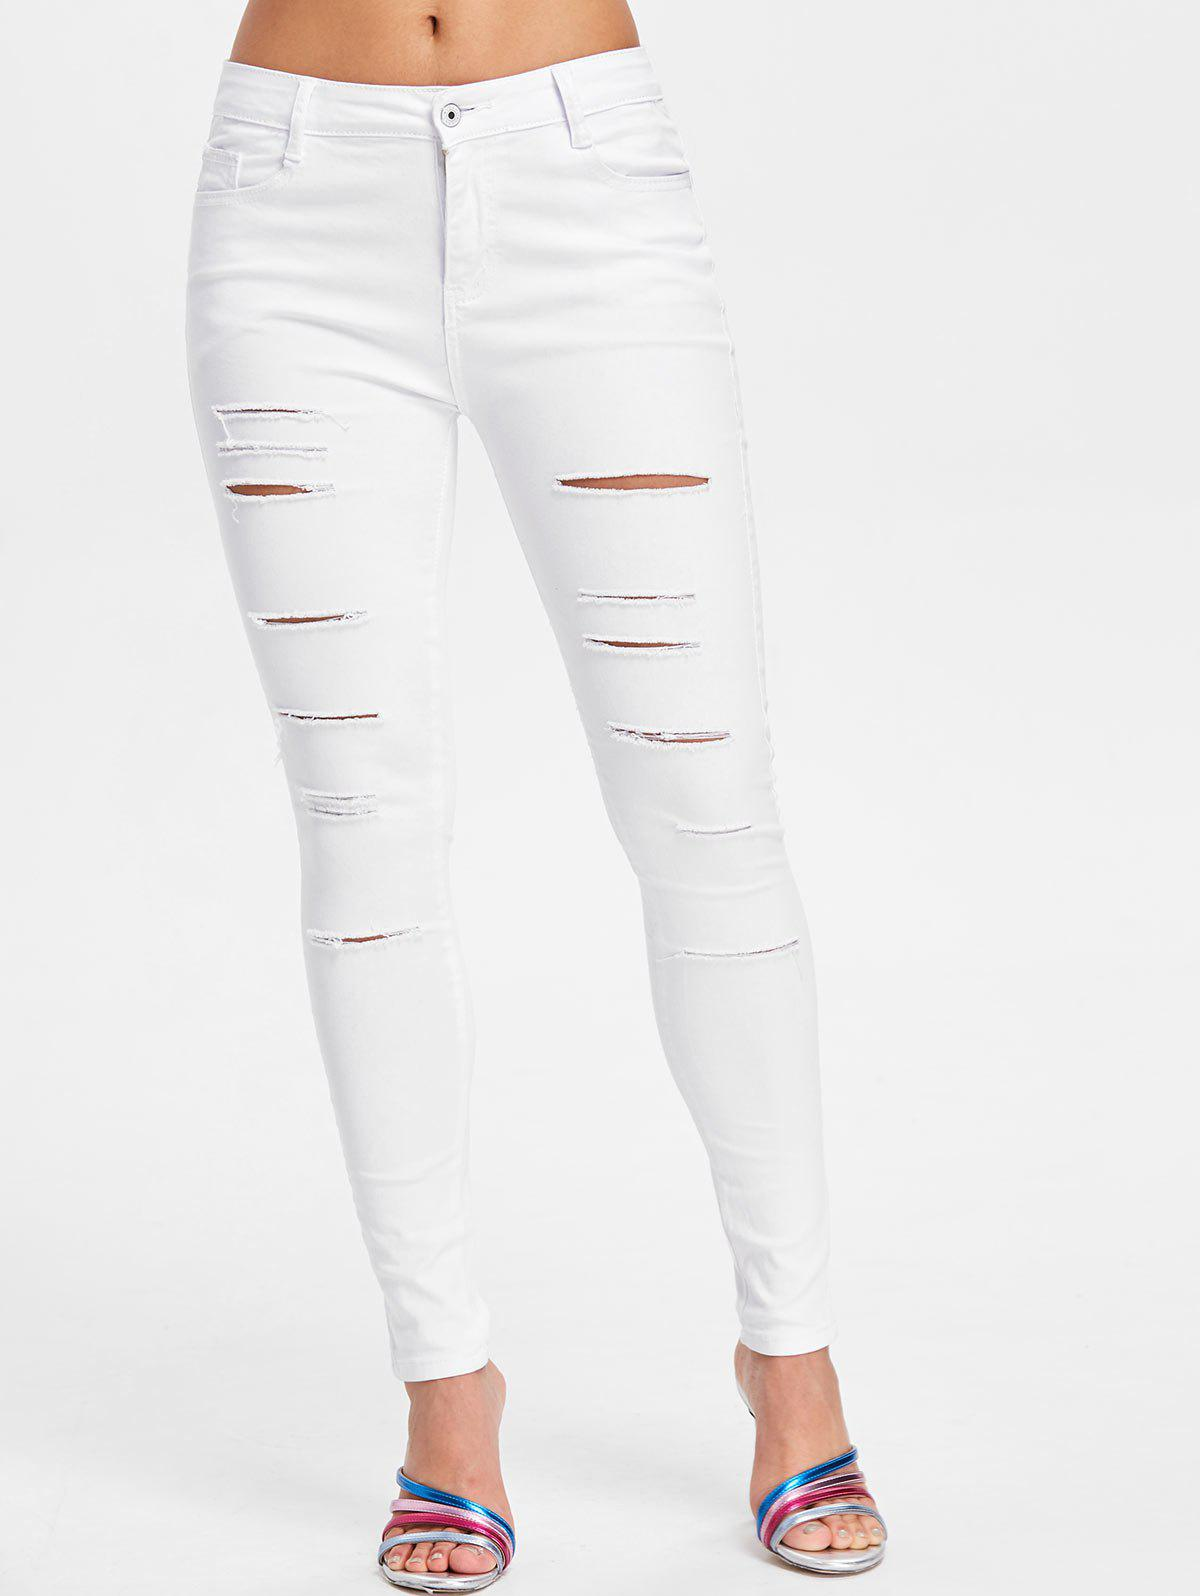 Chic Five Pockets Torn Jeans